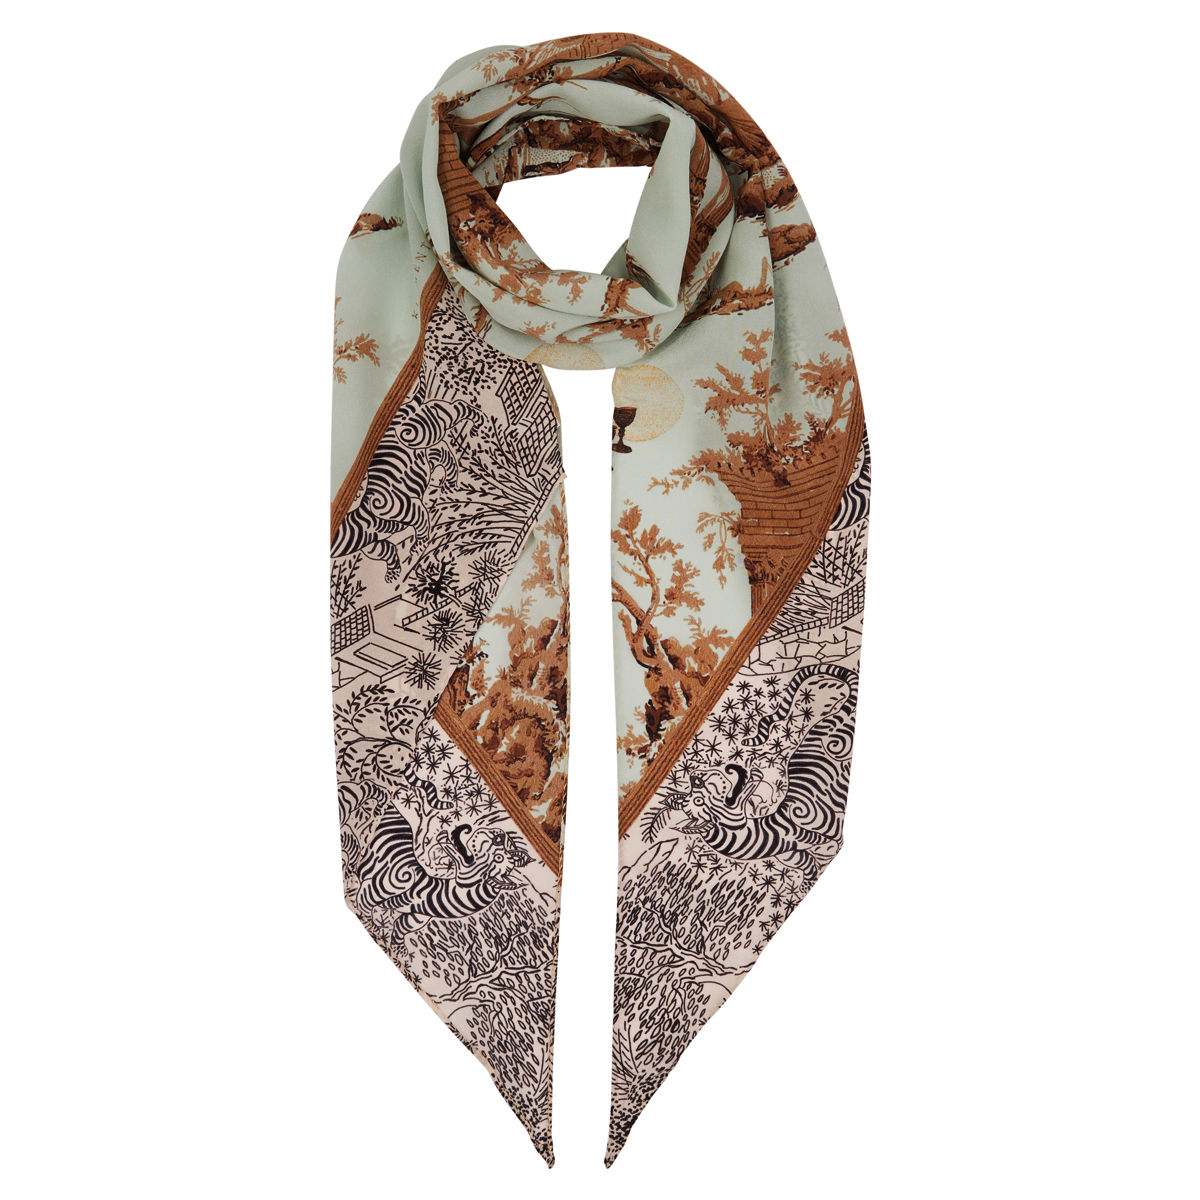 Razor scarf in Cursed Civilisation print - product image